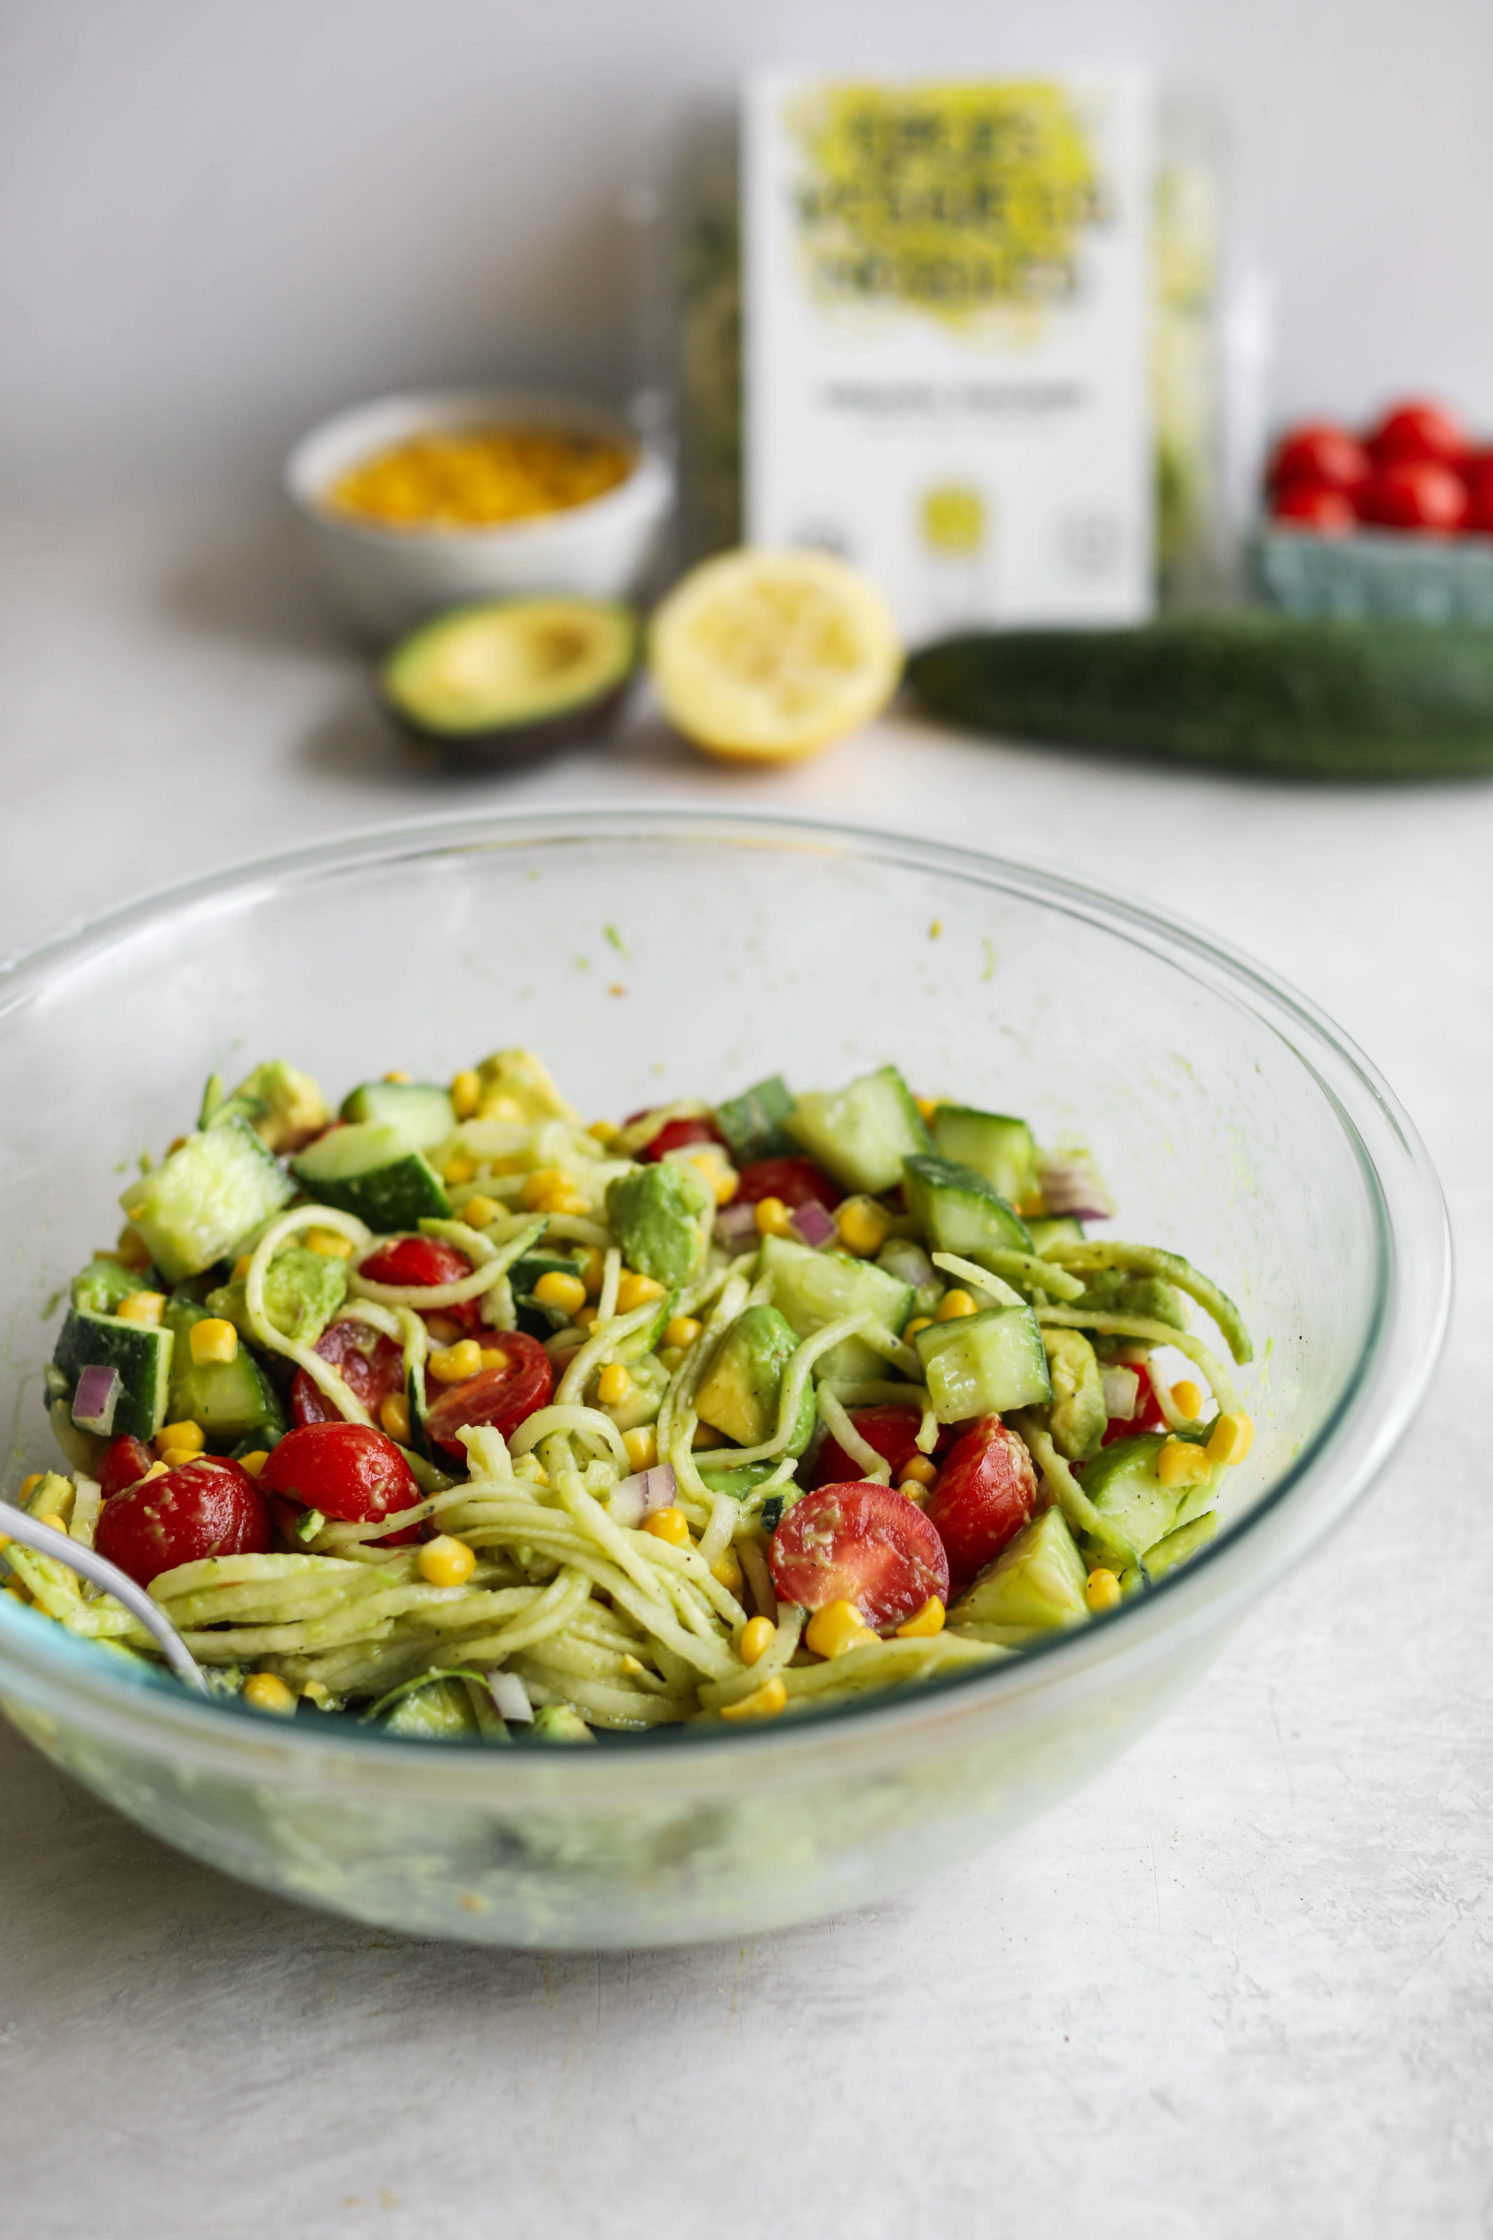 Corn, Tomato, & Avocado Salad with Zoodles (Oil-Free) by Flora & Vino